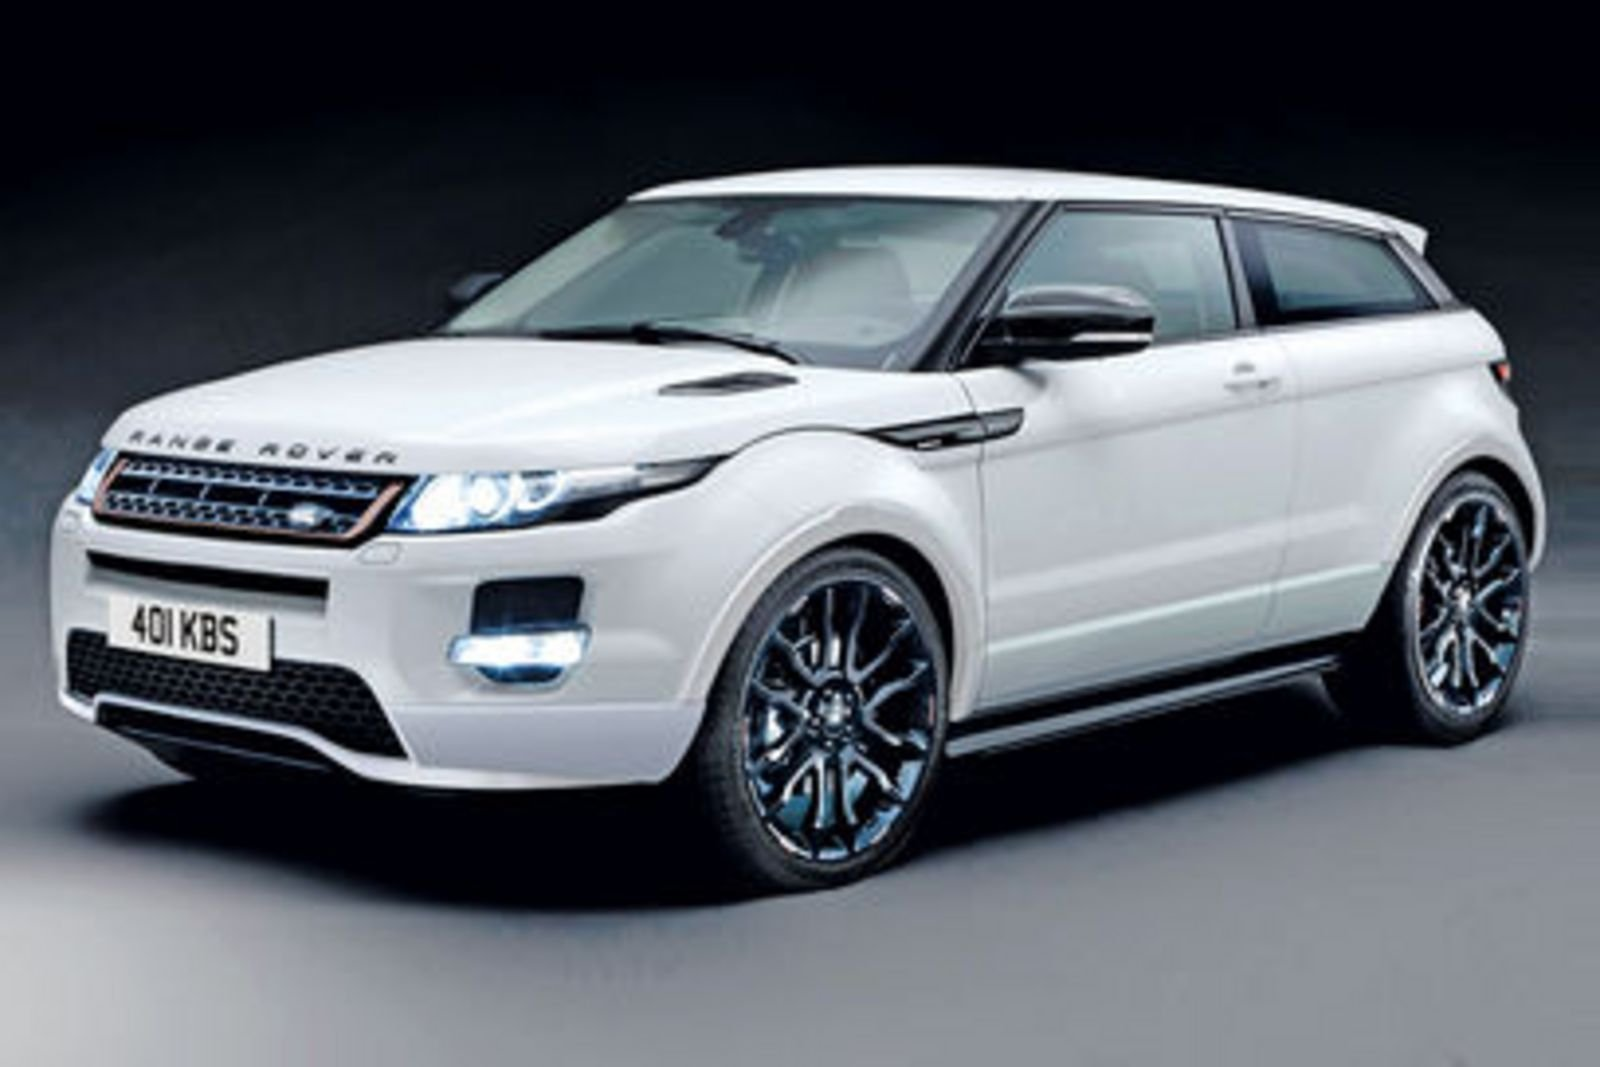 Land Rover Range Sport Reviews Specs Prices Photos And 2007 Supercharged Firing Order With Diagrams Images 2014 Evoque